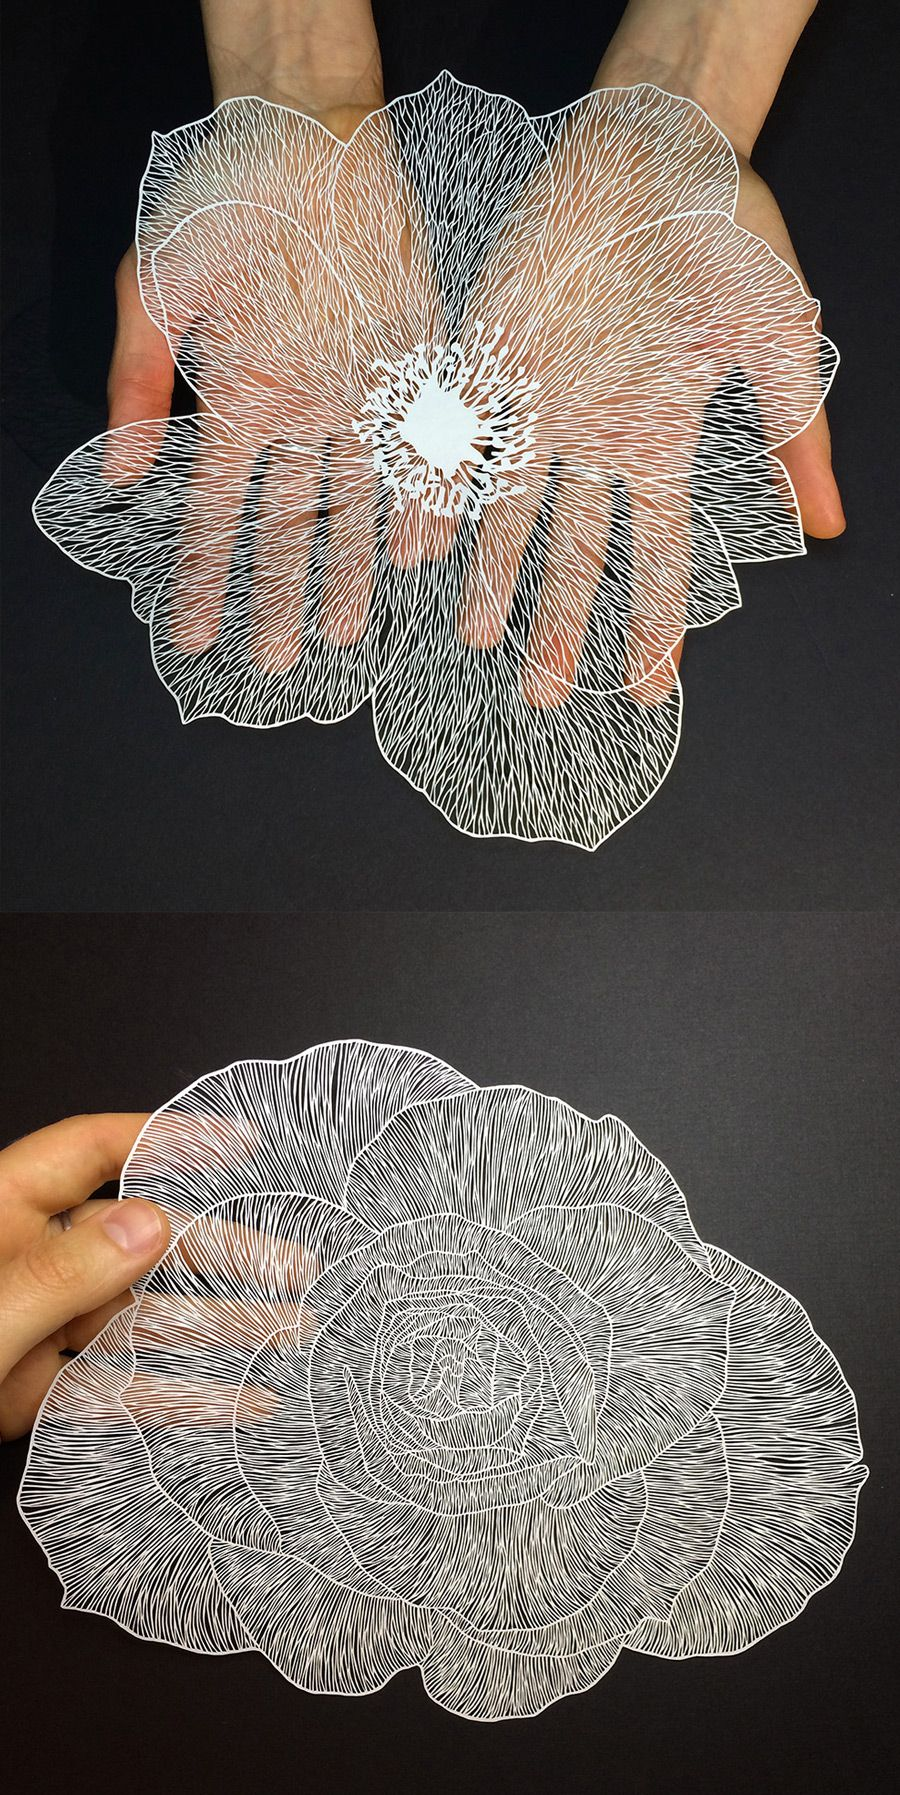 New Delicate Cut Paper Flowers By Maude White Art Pinterest - Intricate hand cut paper art maude white